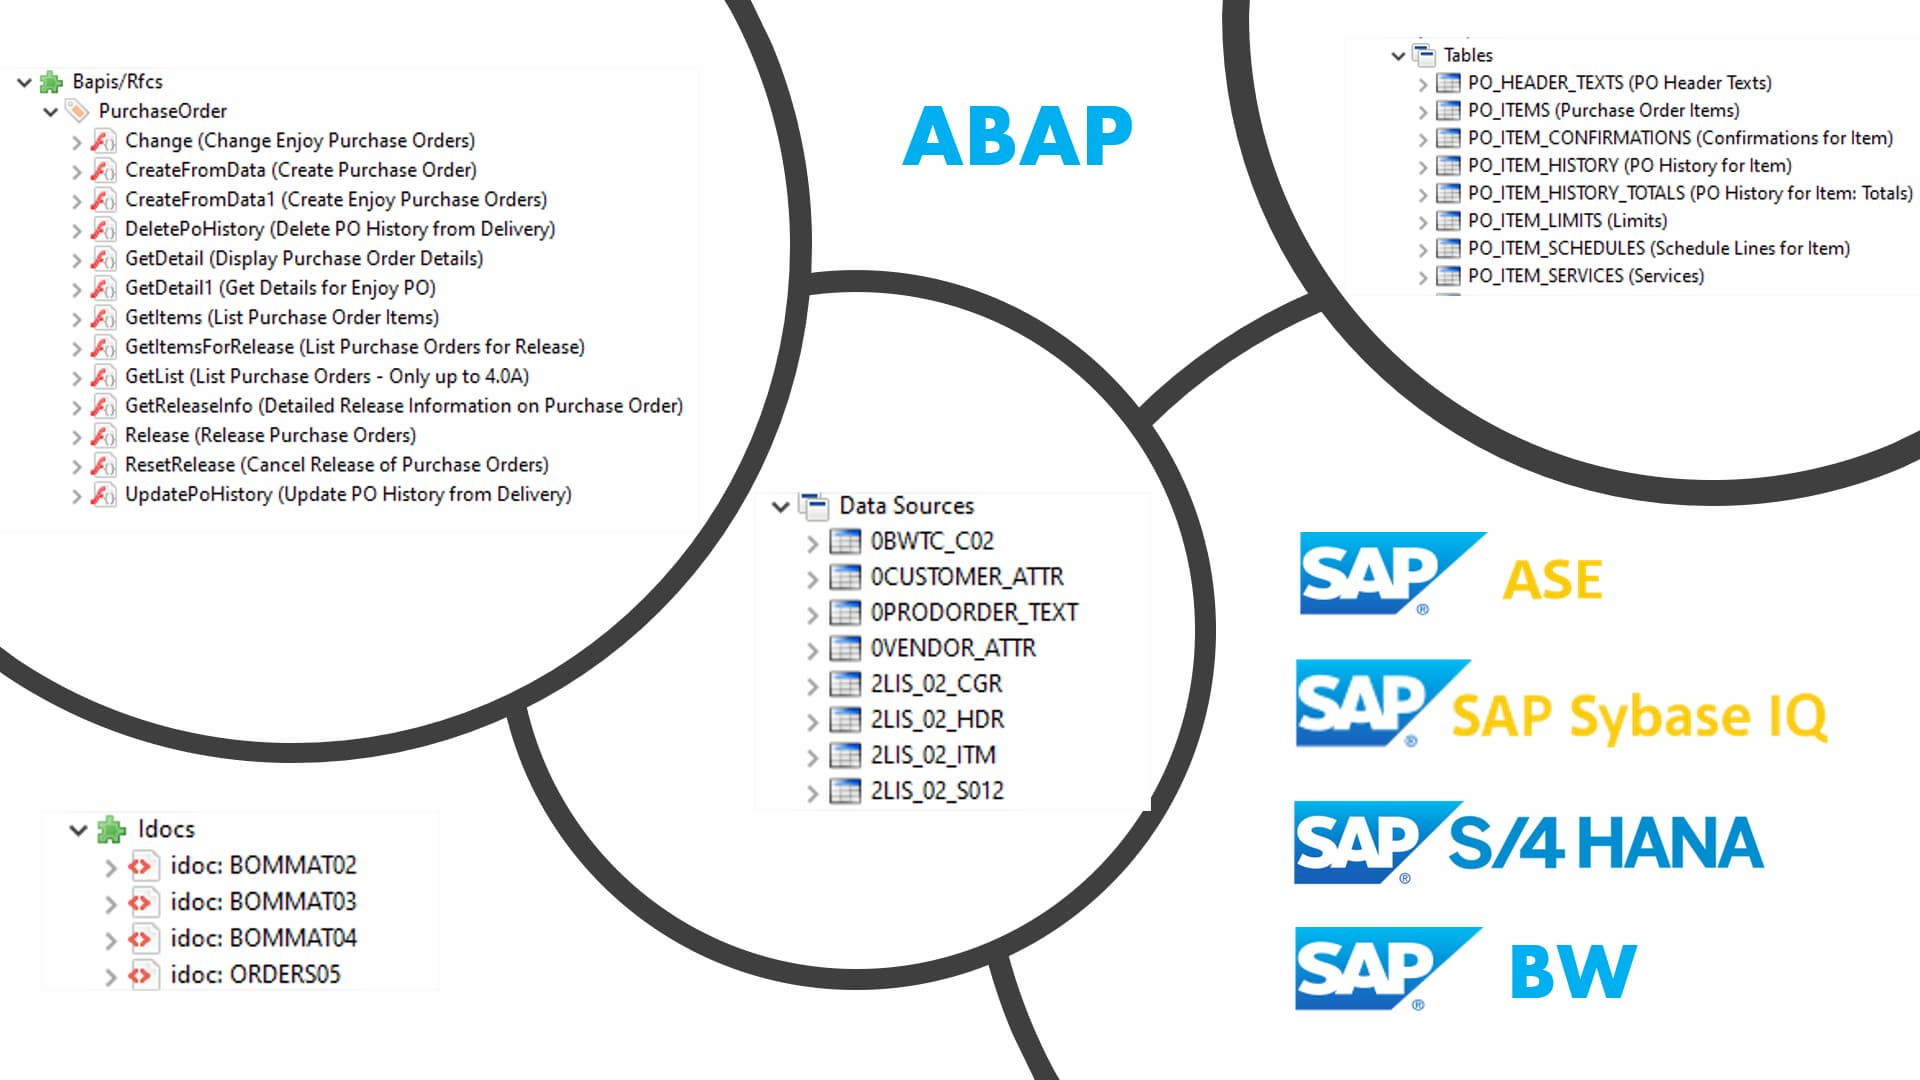 Simplify SAP complexities and use the Unified Stambia solution